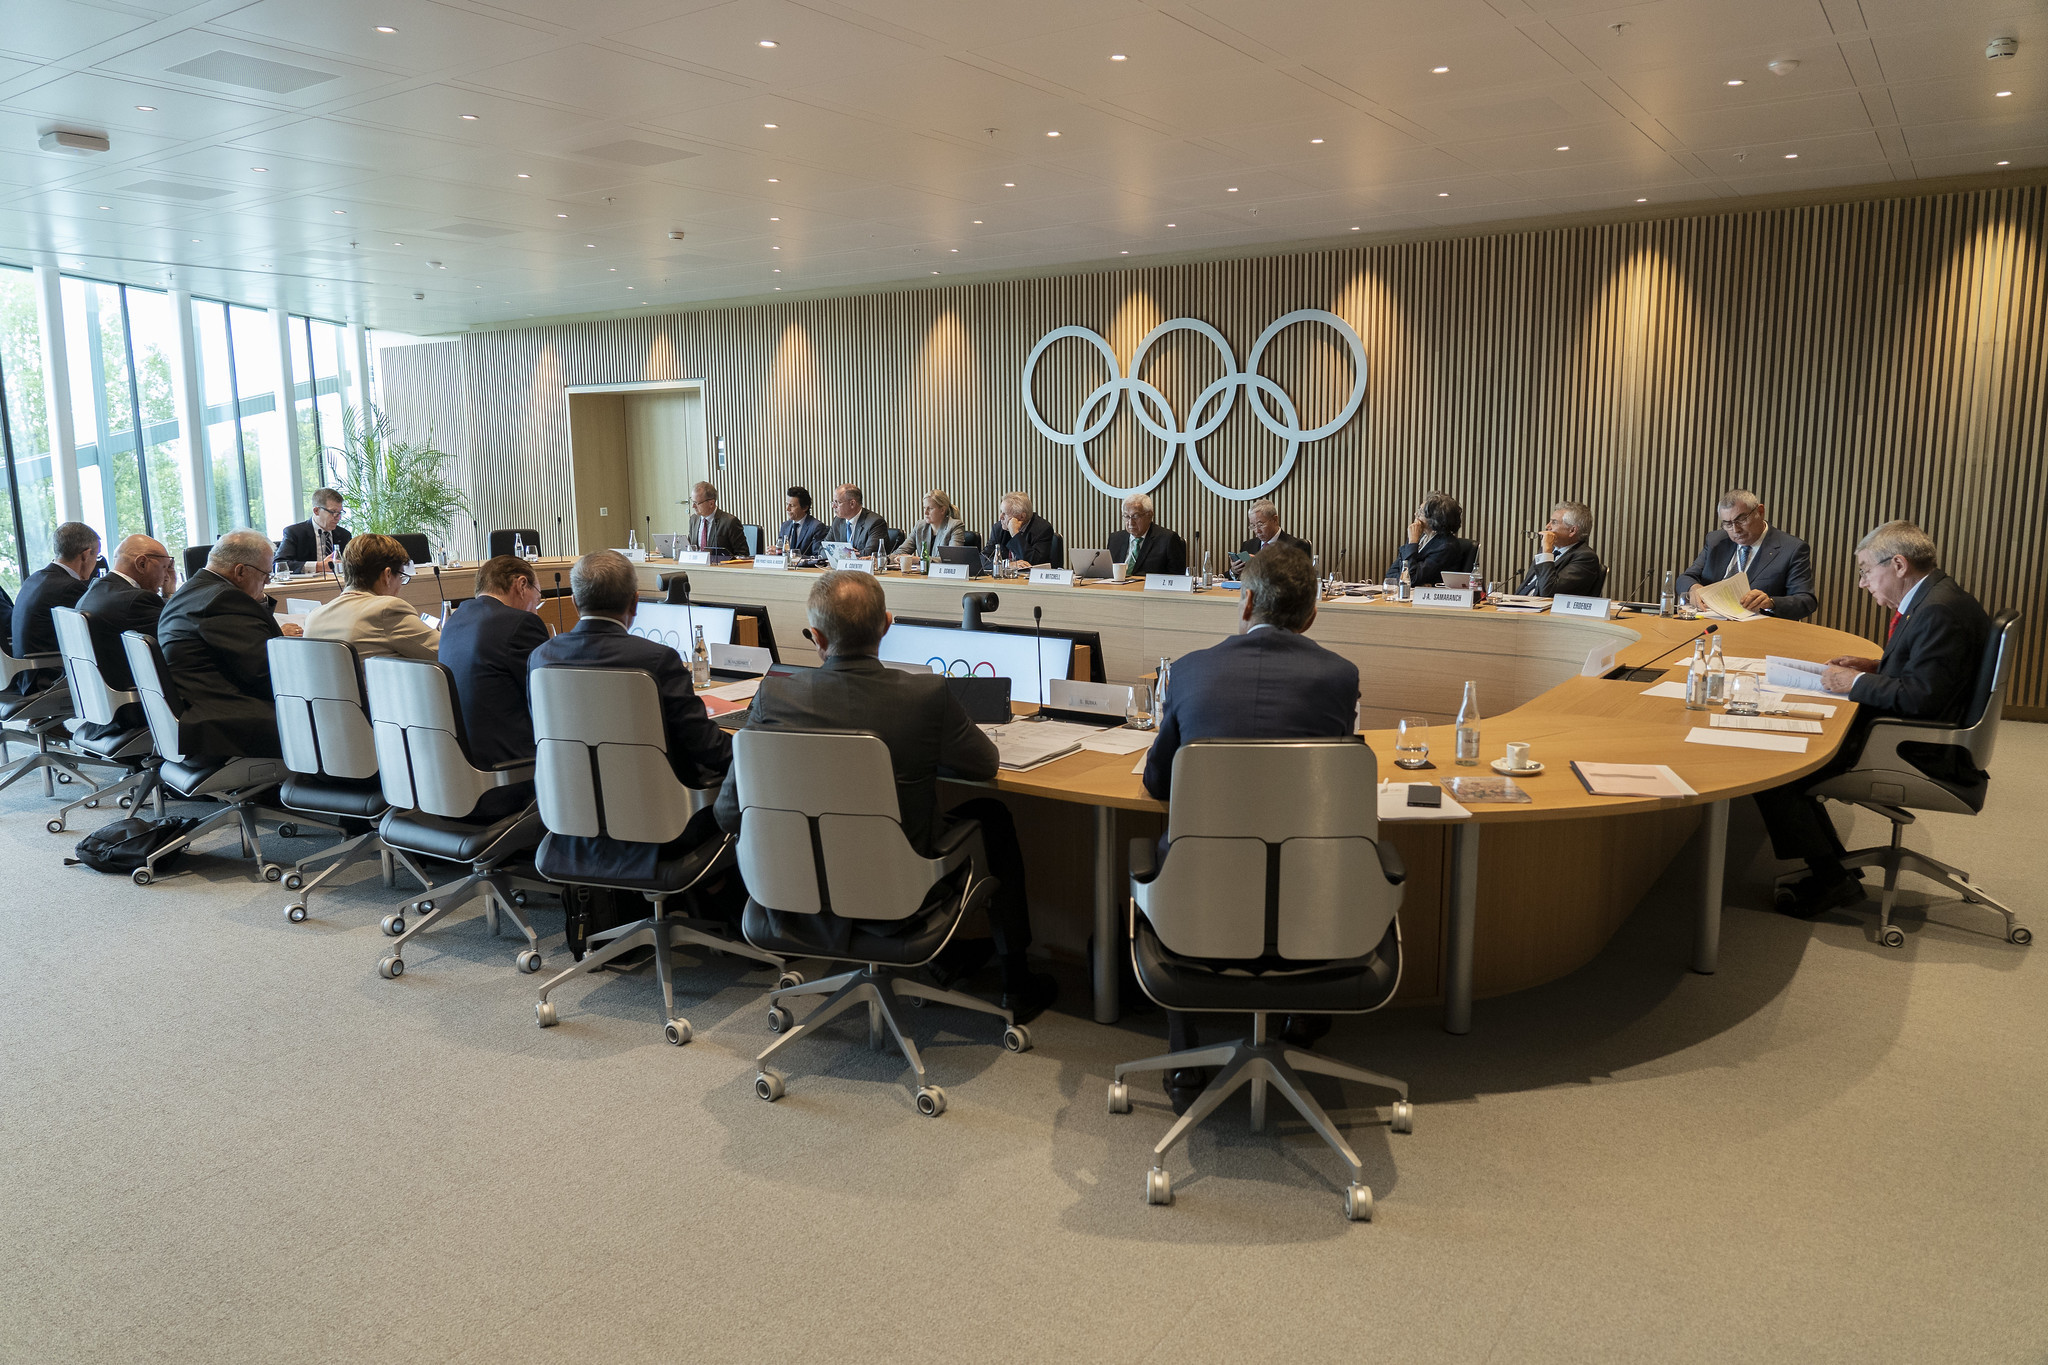 The International Olympic Committee's Executive Board cited good governance among the reasons for recommending the Alliance of Independent Recognised Members of Sport for full recognition ©IOC Media